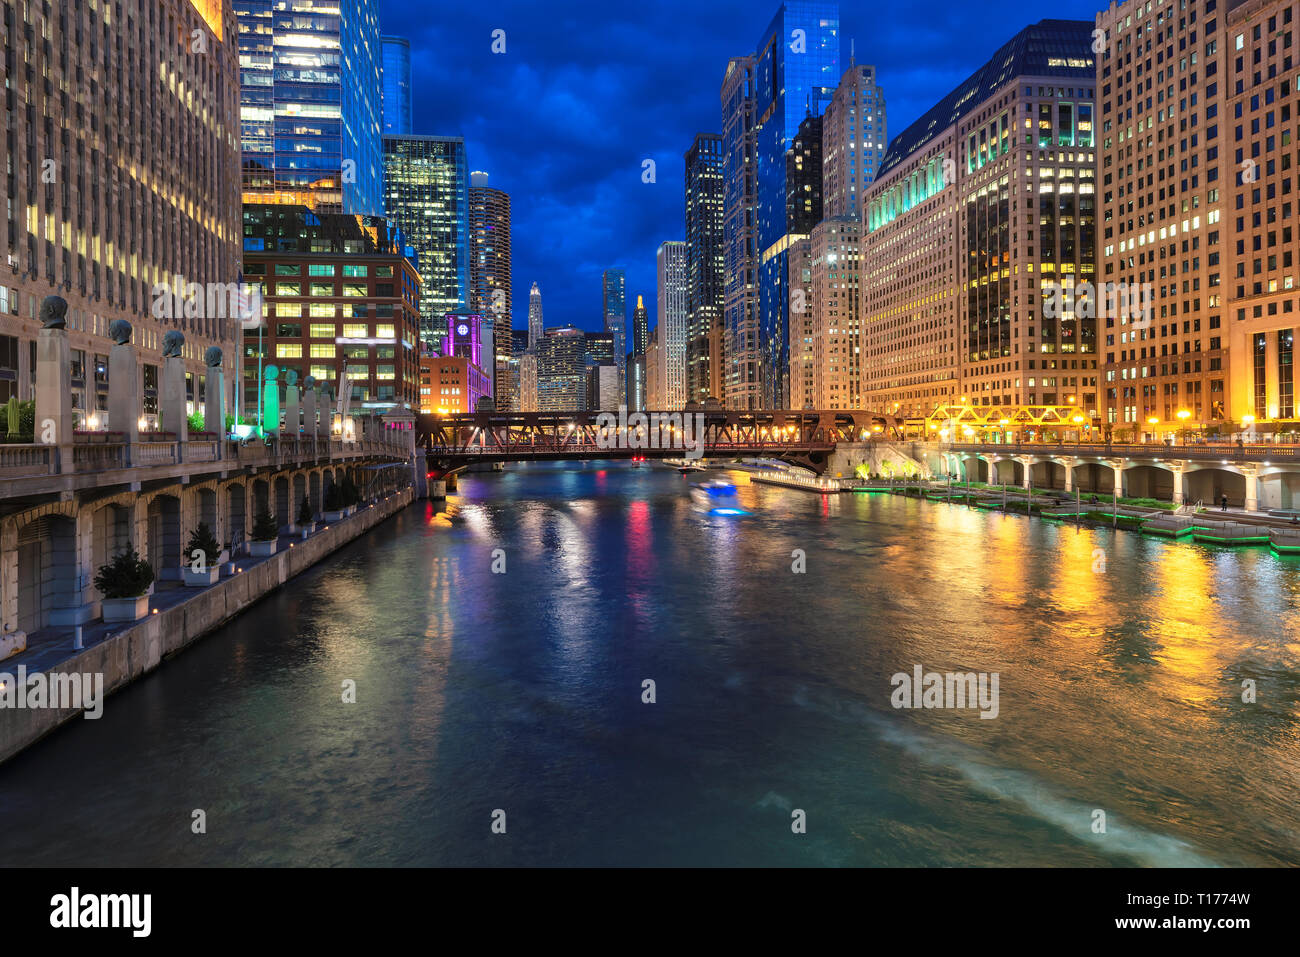 Night view of Chicago city in Chicago, Illinois - Stock Image